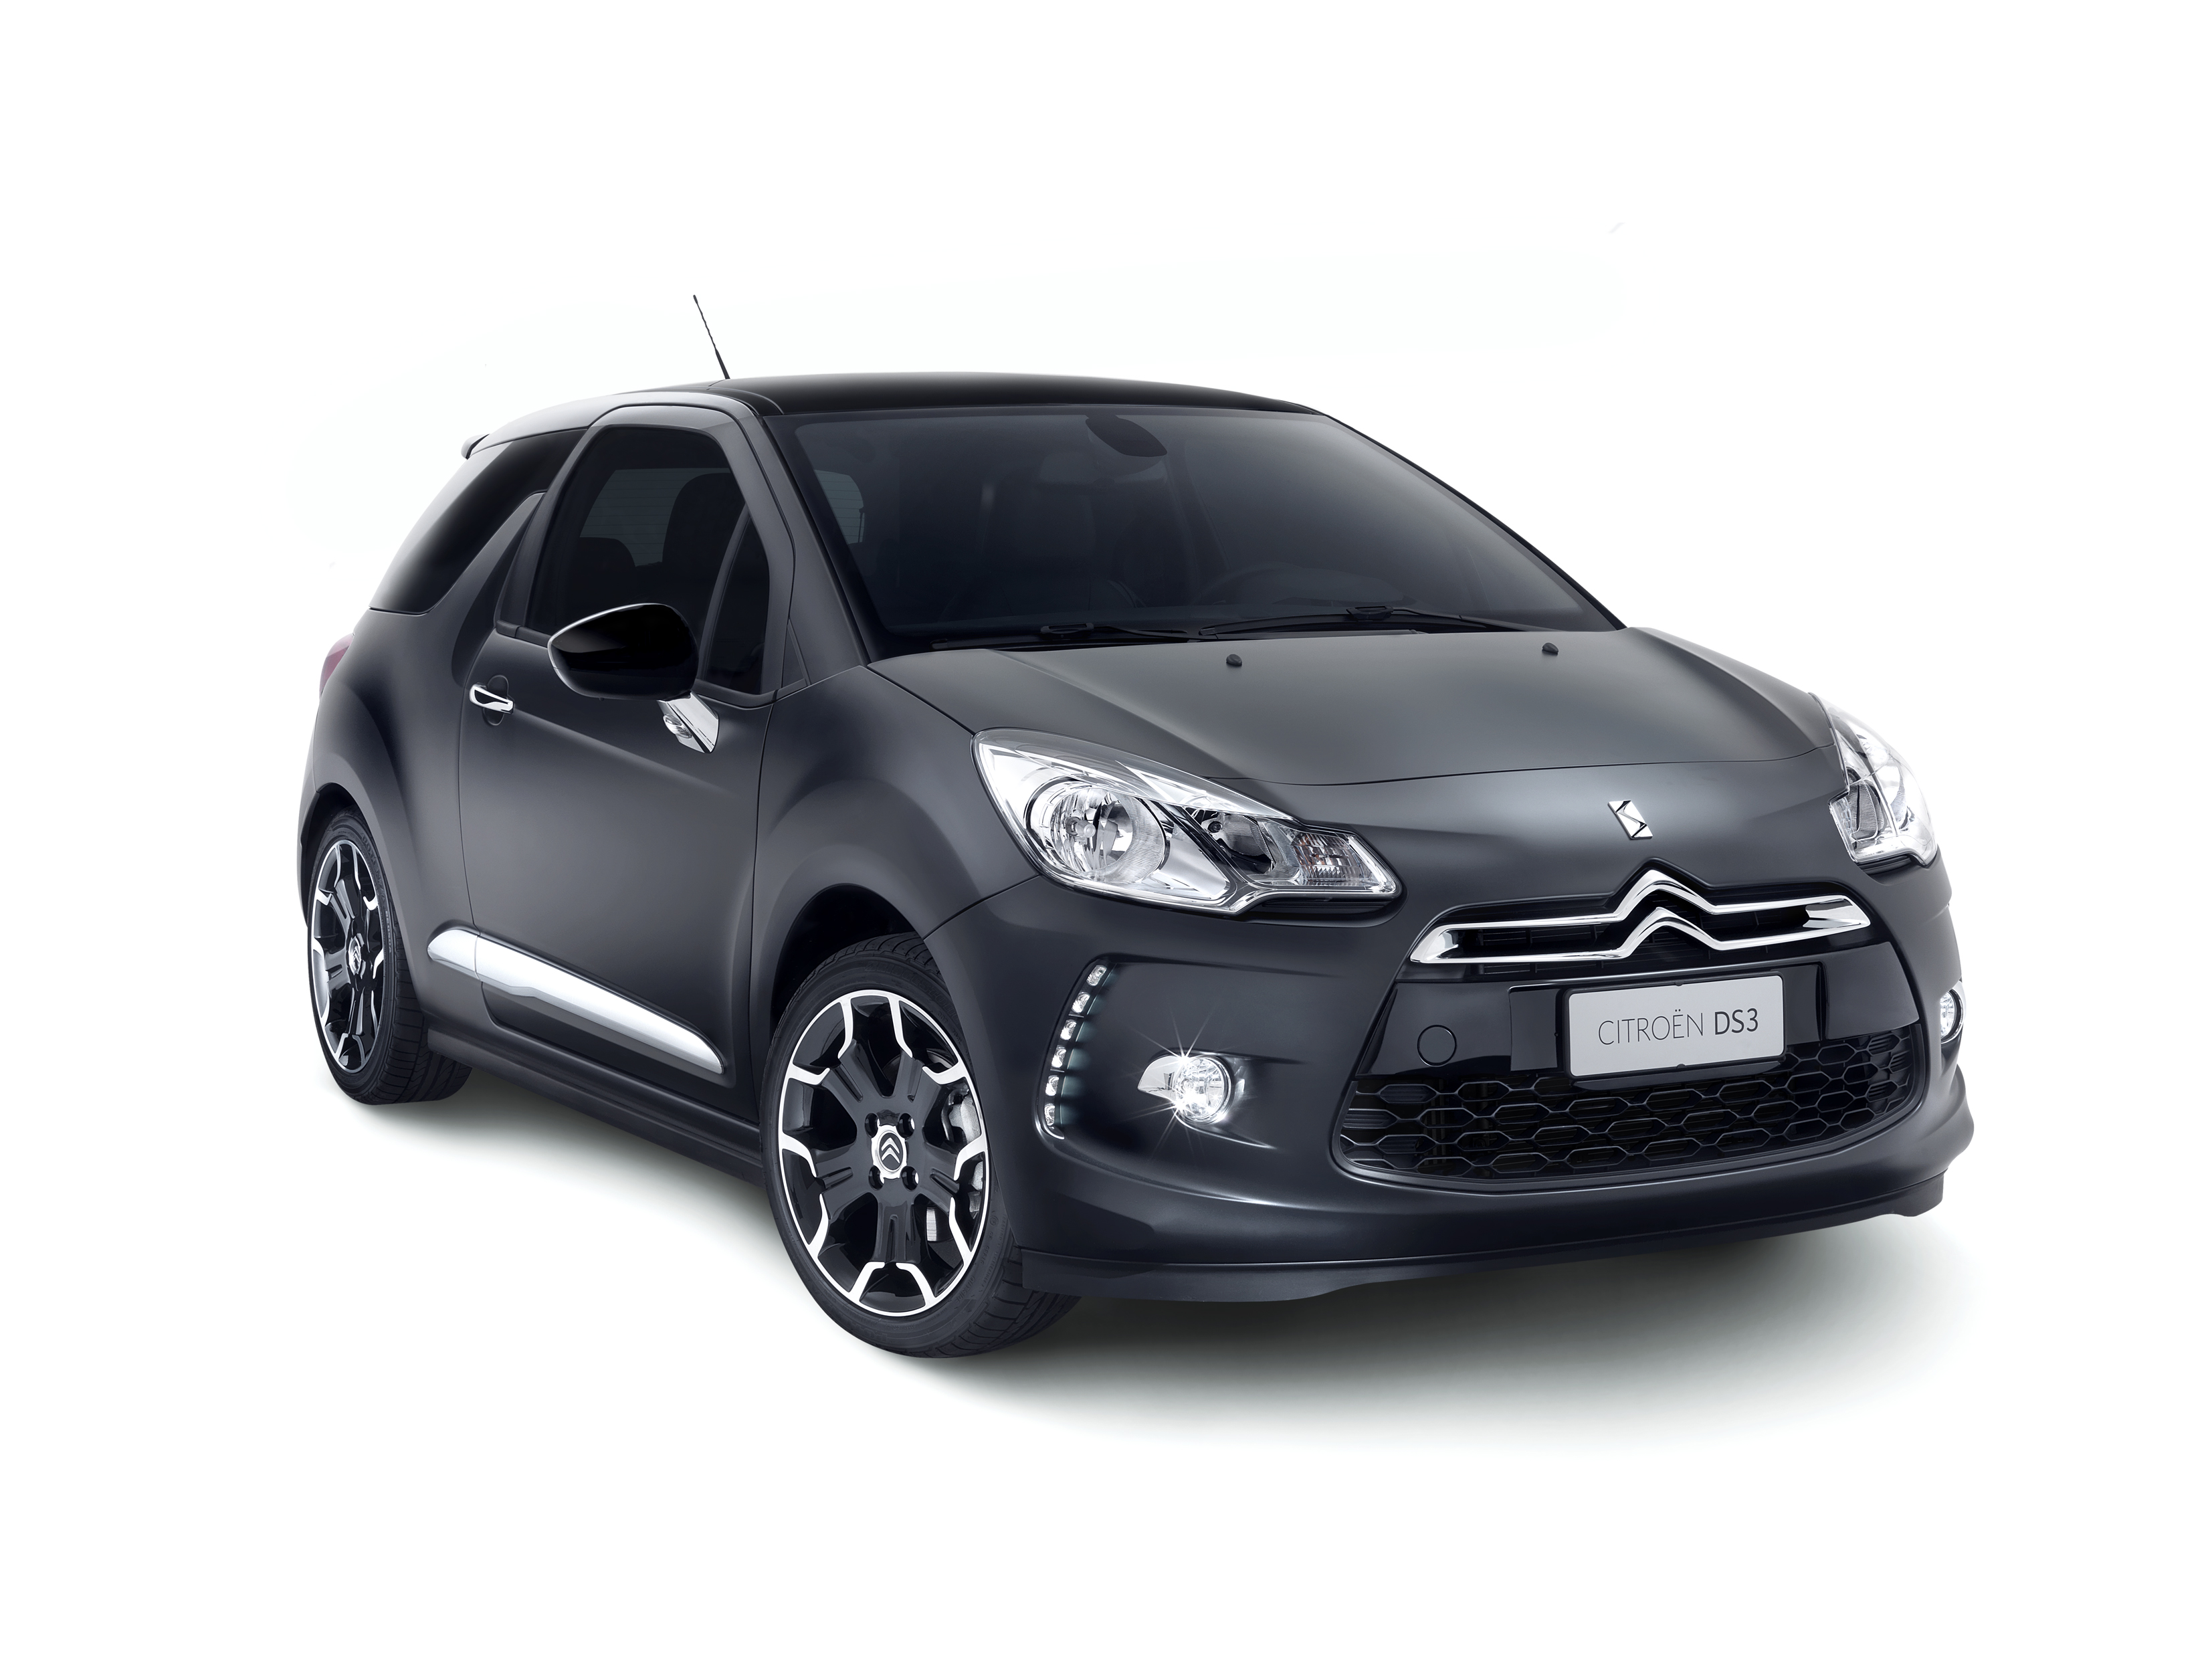 citroen ds3 review and photos. Black Bedroom Furniture Sets. Home Design Ideas